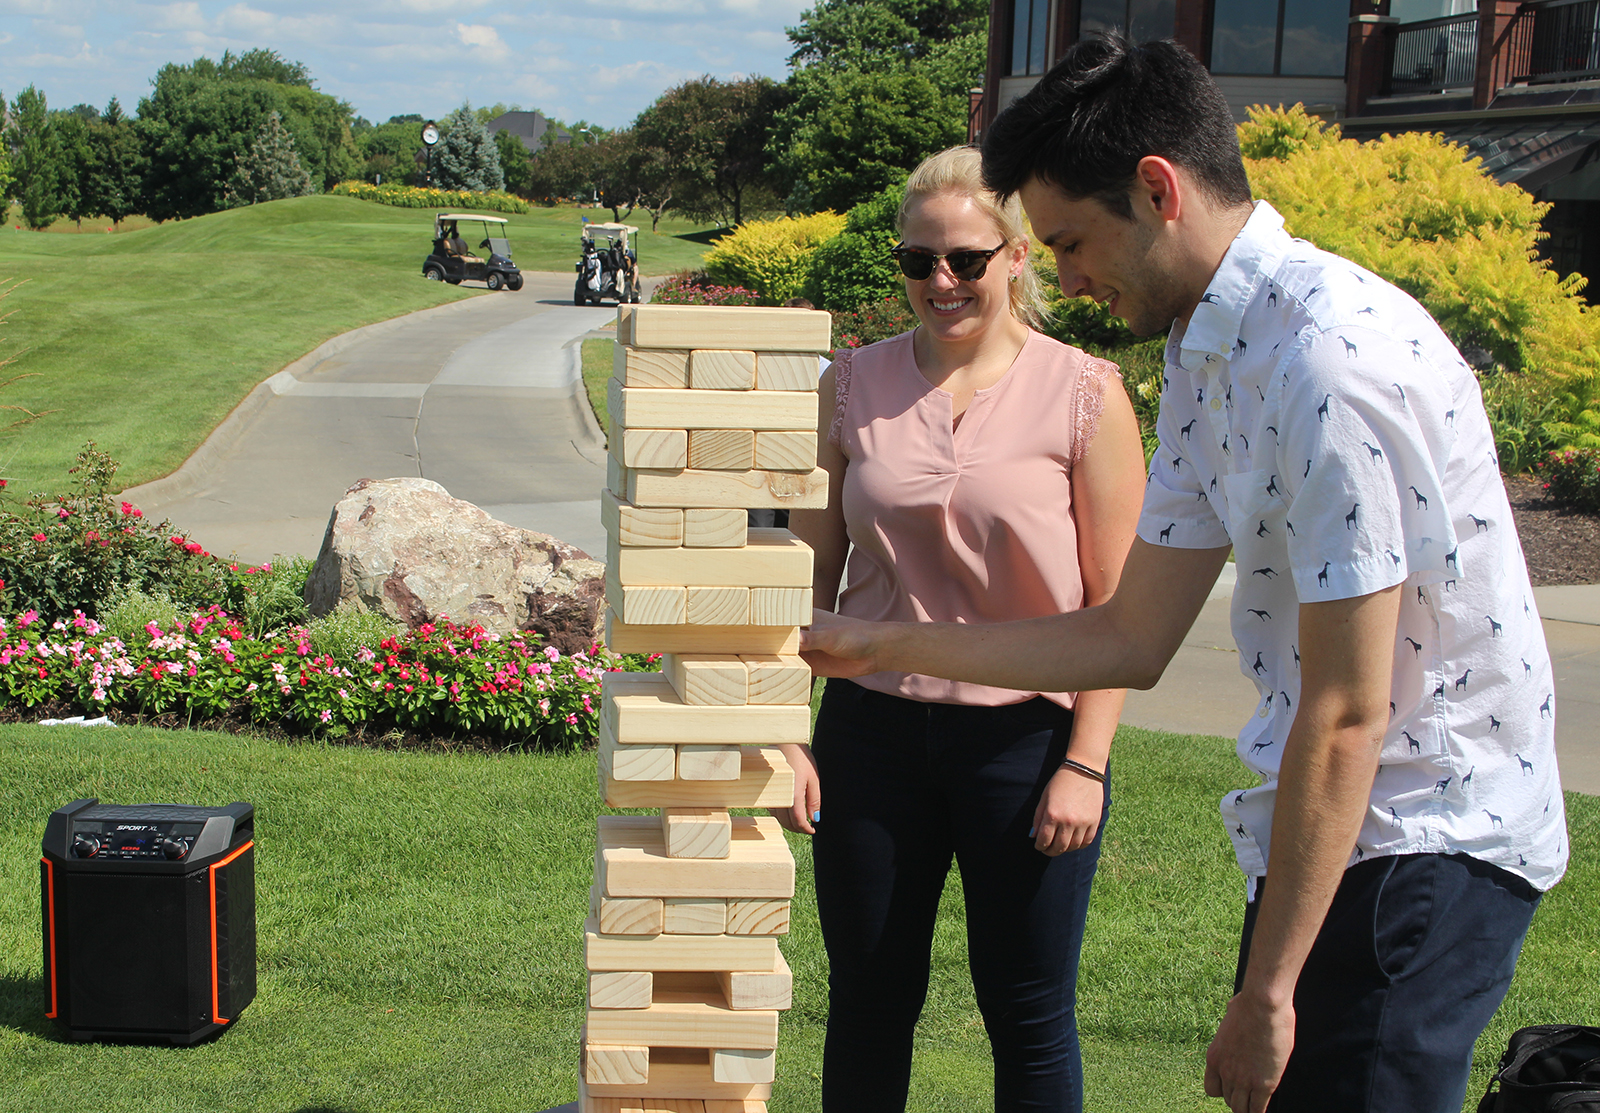 Connor Christensen pulls a brick from an outdoor Jenga set while Amelia Prickett watches during the field games competition at the Omaha Bar Association Field Day last Monday at Champions Run. Christensen and Prickett work for Warren Distribution. (Photo by Scott Stewart)